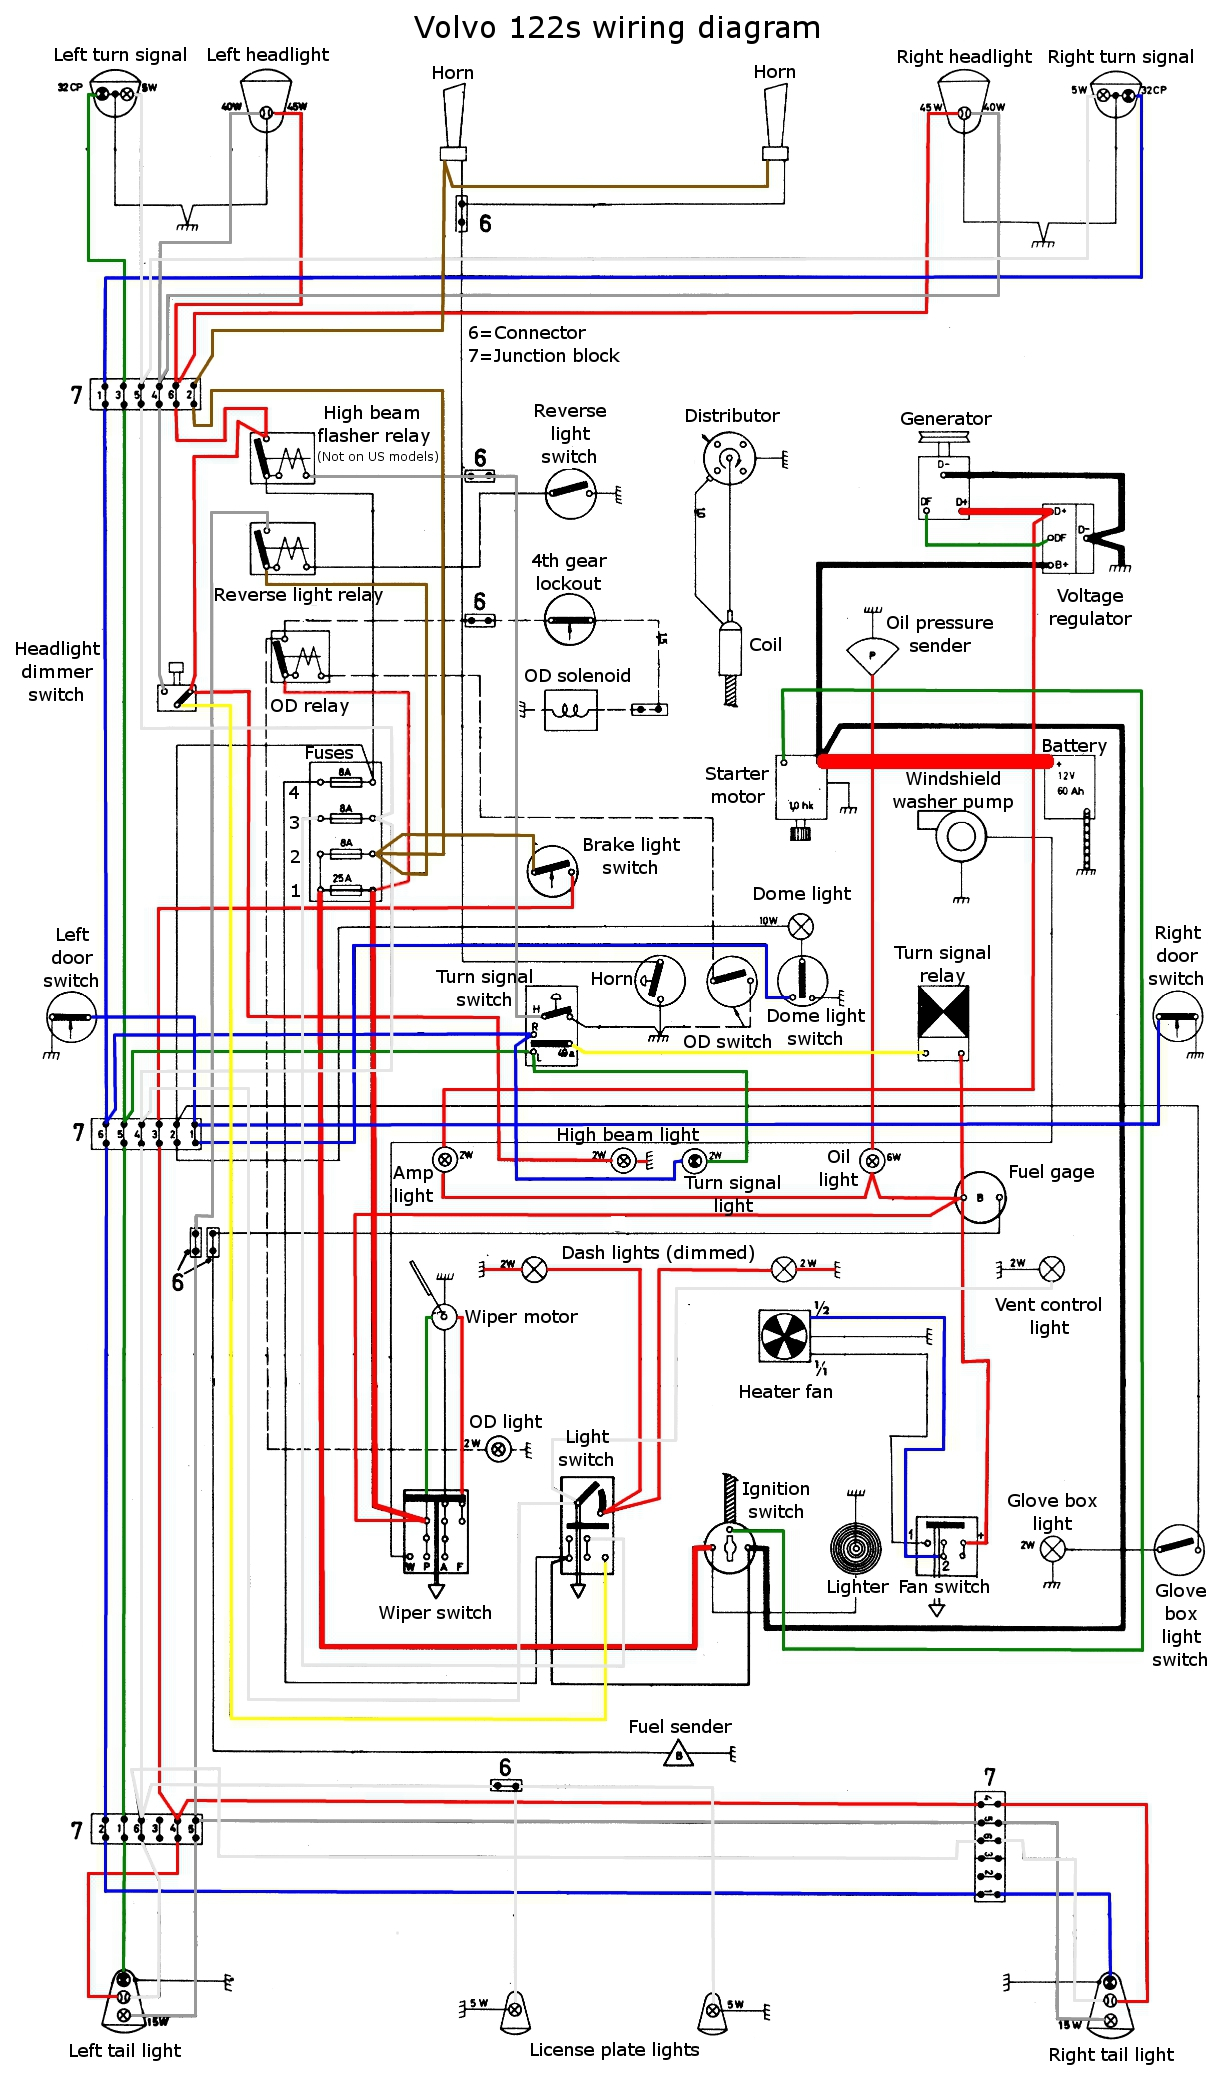 122 wiring diagram color wiring gremlins volvo xc70 wiring diagram at n-0.co